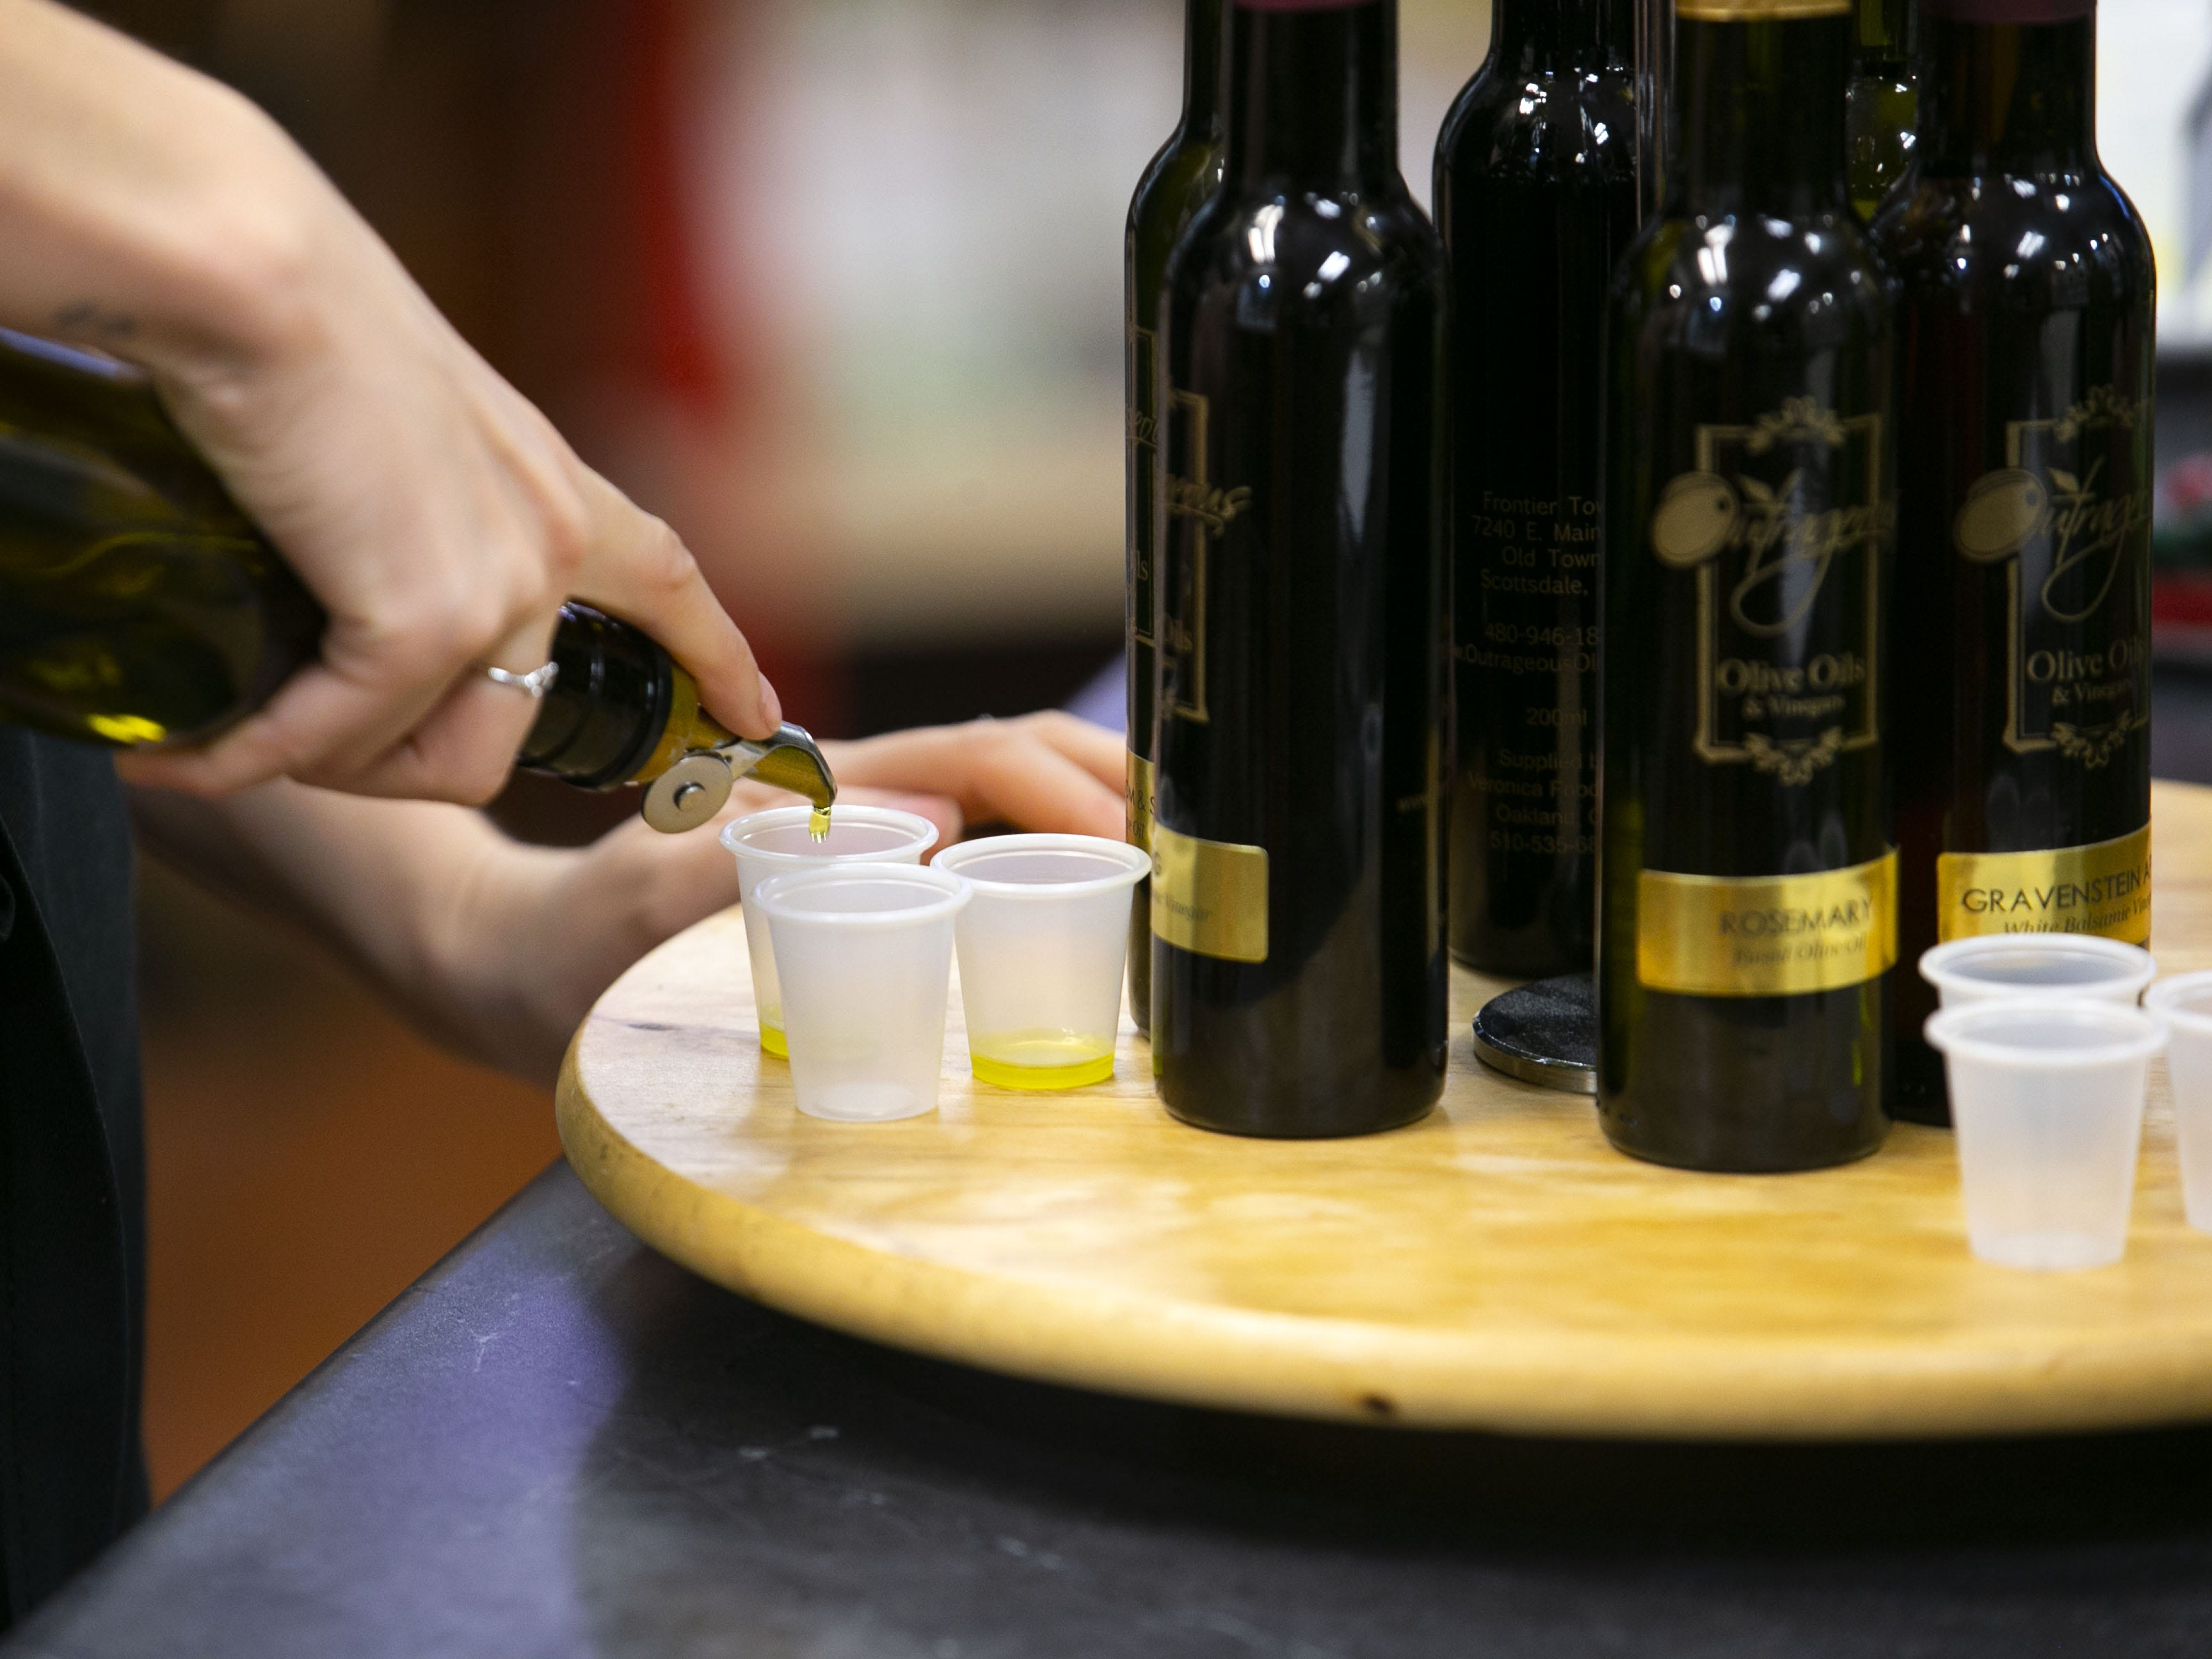 Samples of olive oil are poured at Outrageous Olive Oils & Vinegars in Old Town Scottsdale on Tuesday, Dec. 11, 2018. The shop is owned by former child actor, Frankie Muniz and his fiance Paige Price.